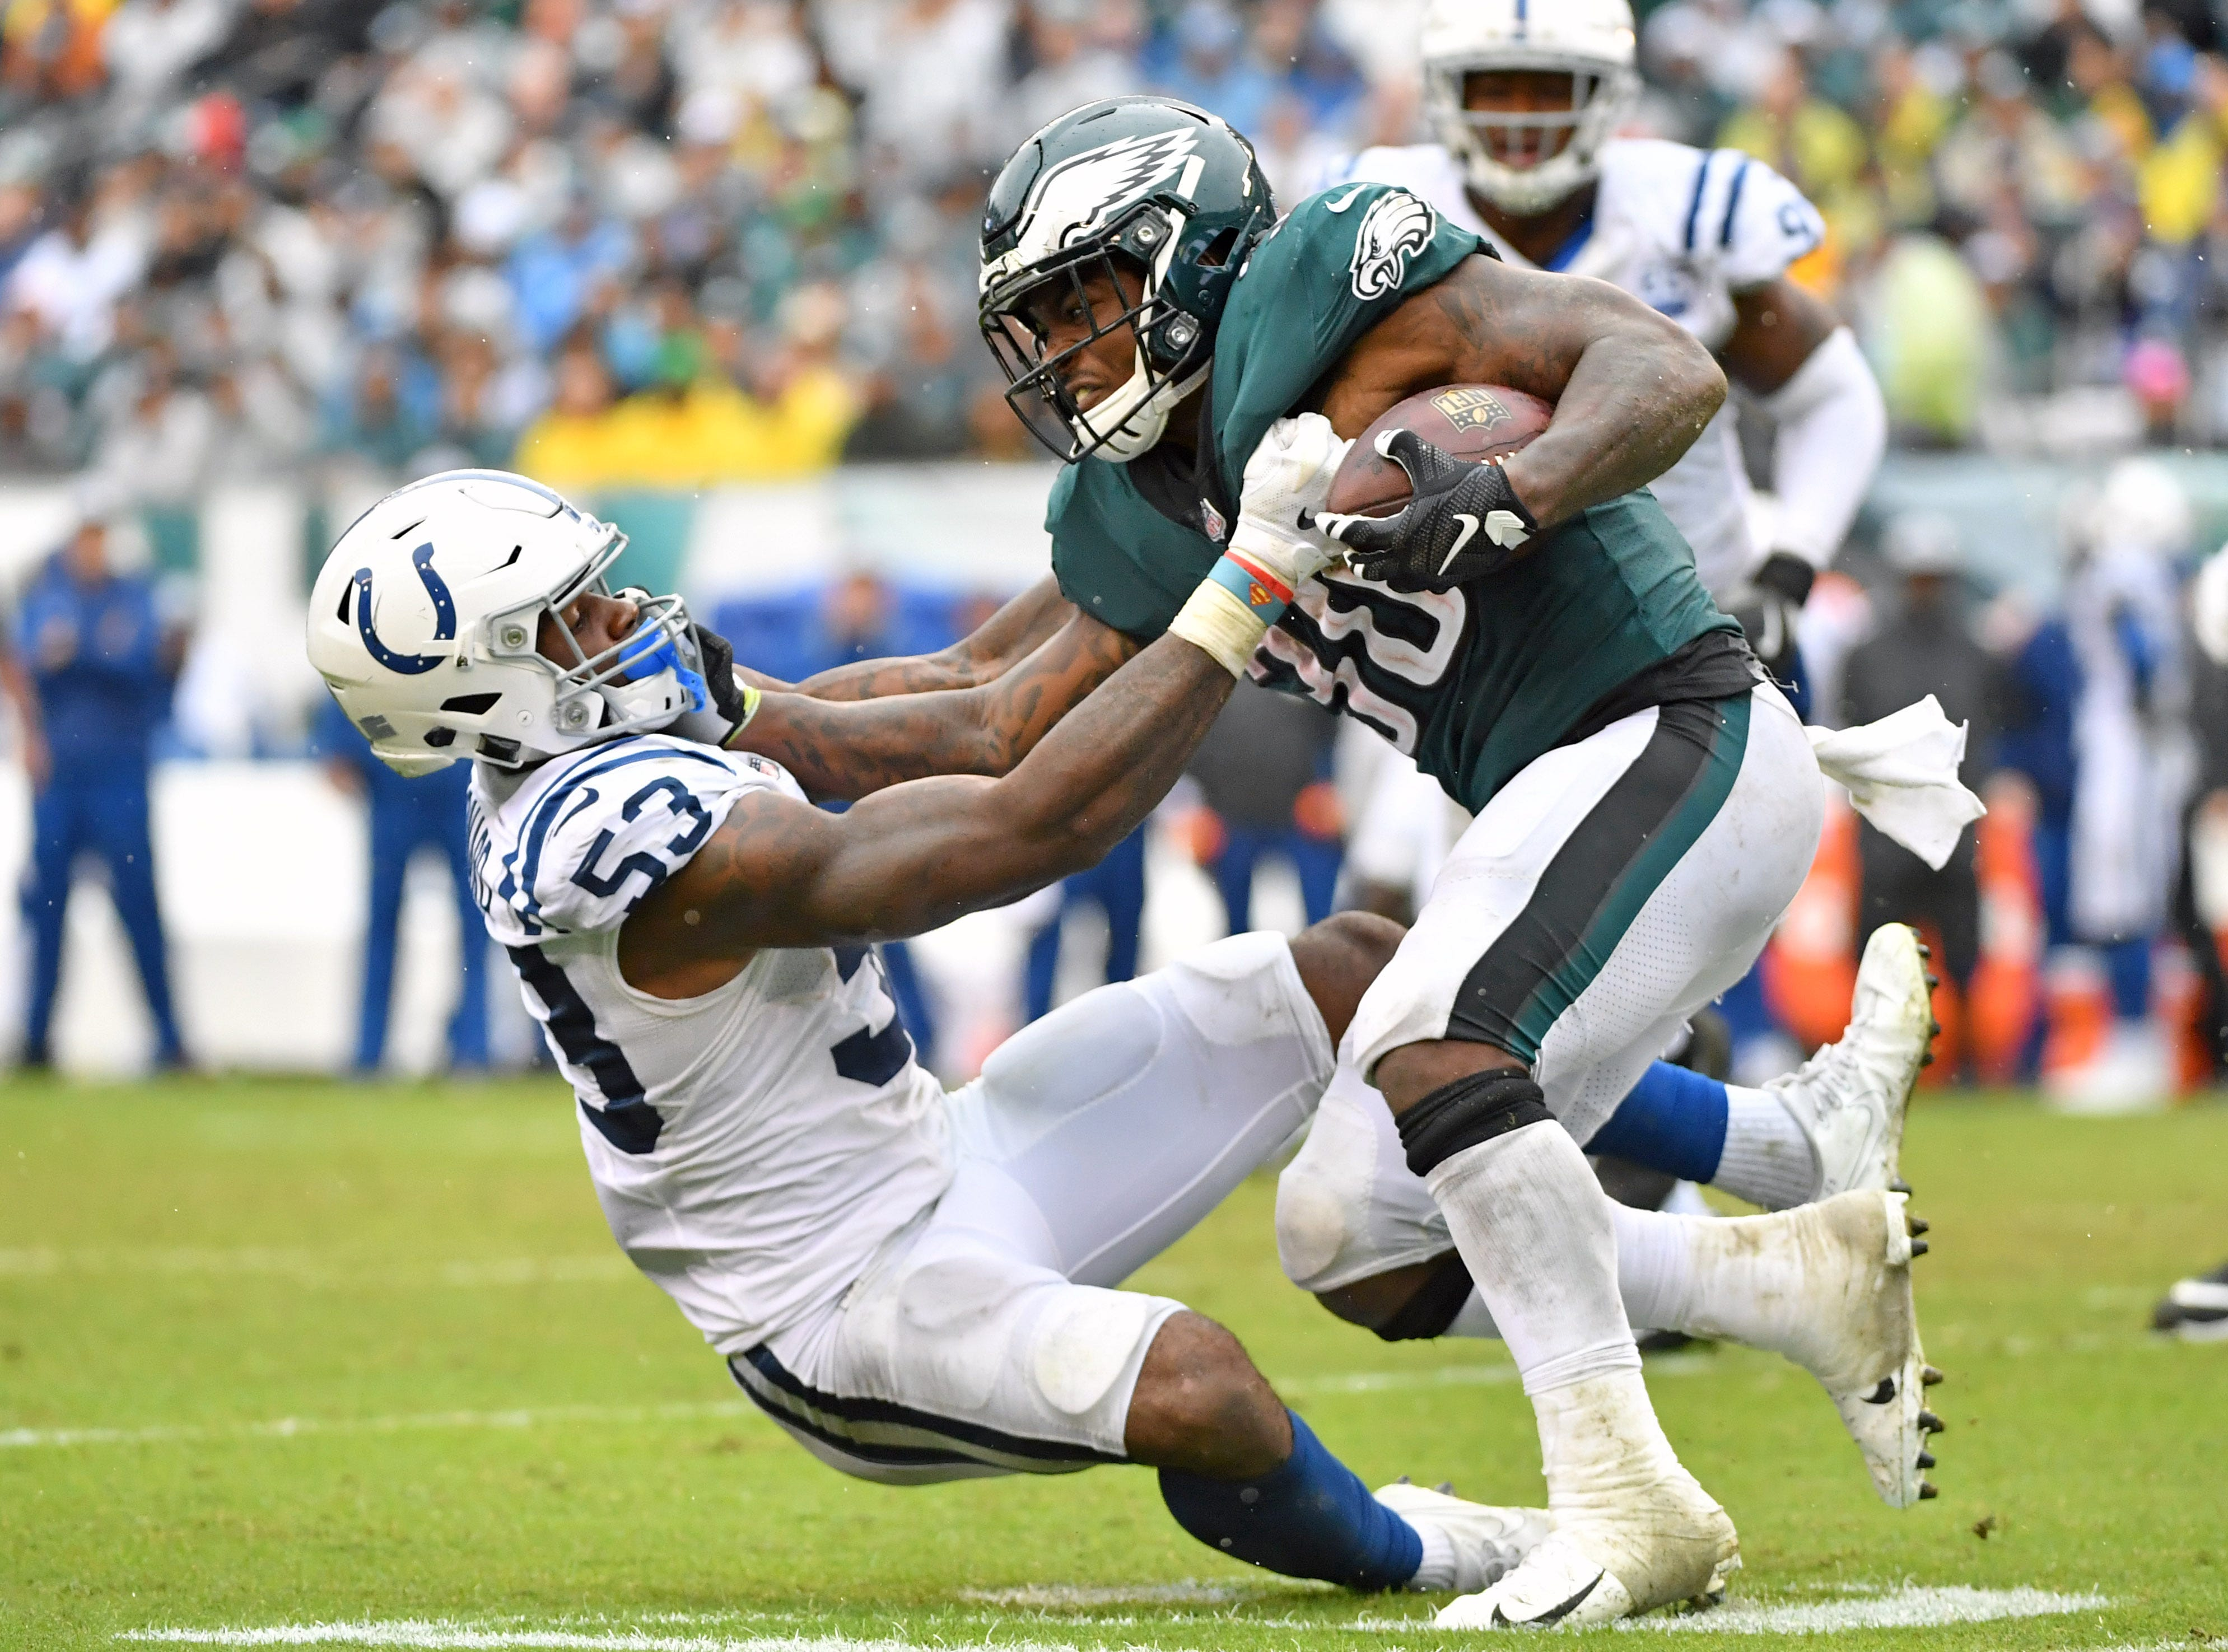 Leonard brings down Eagles running back Corey Clement (30) during the third quarter of their game Sept. 23.